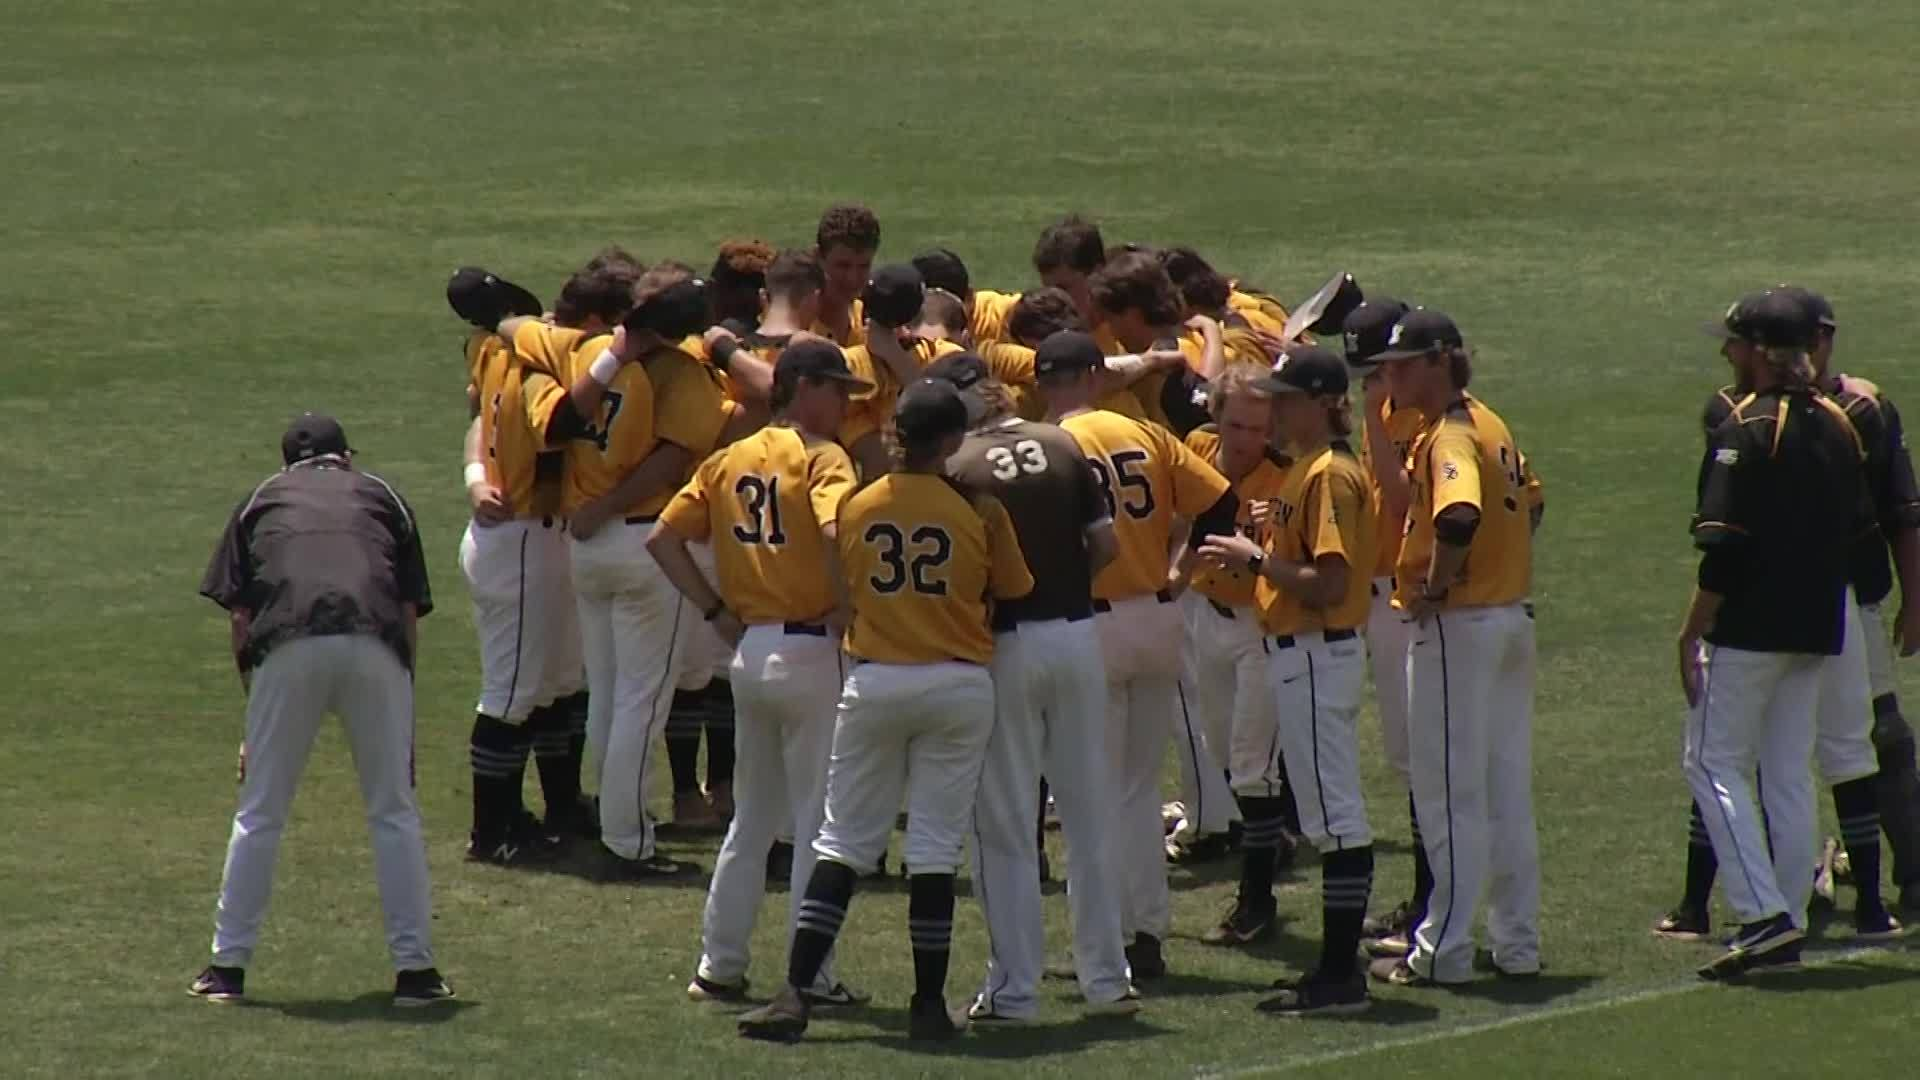 Birmingham-Southern Panthers baseball team advances to Division III College World Series